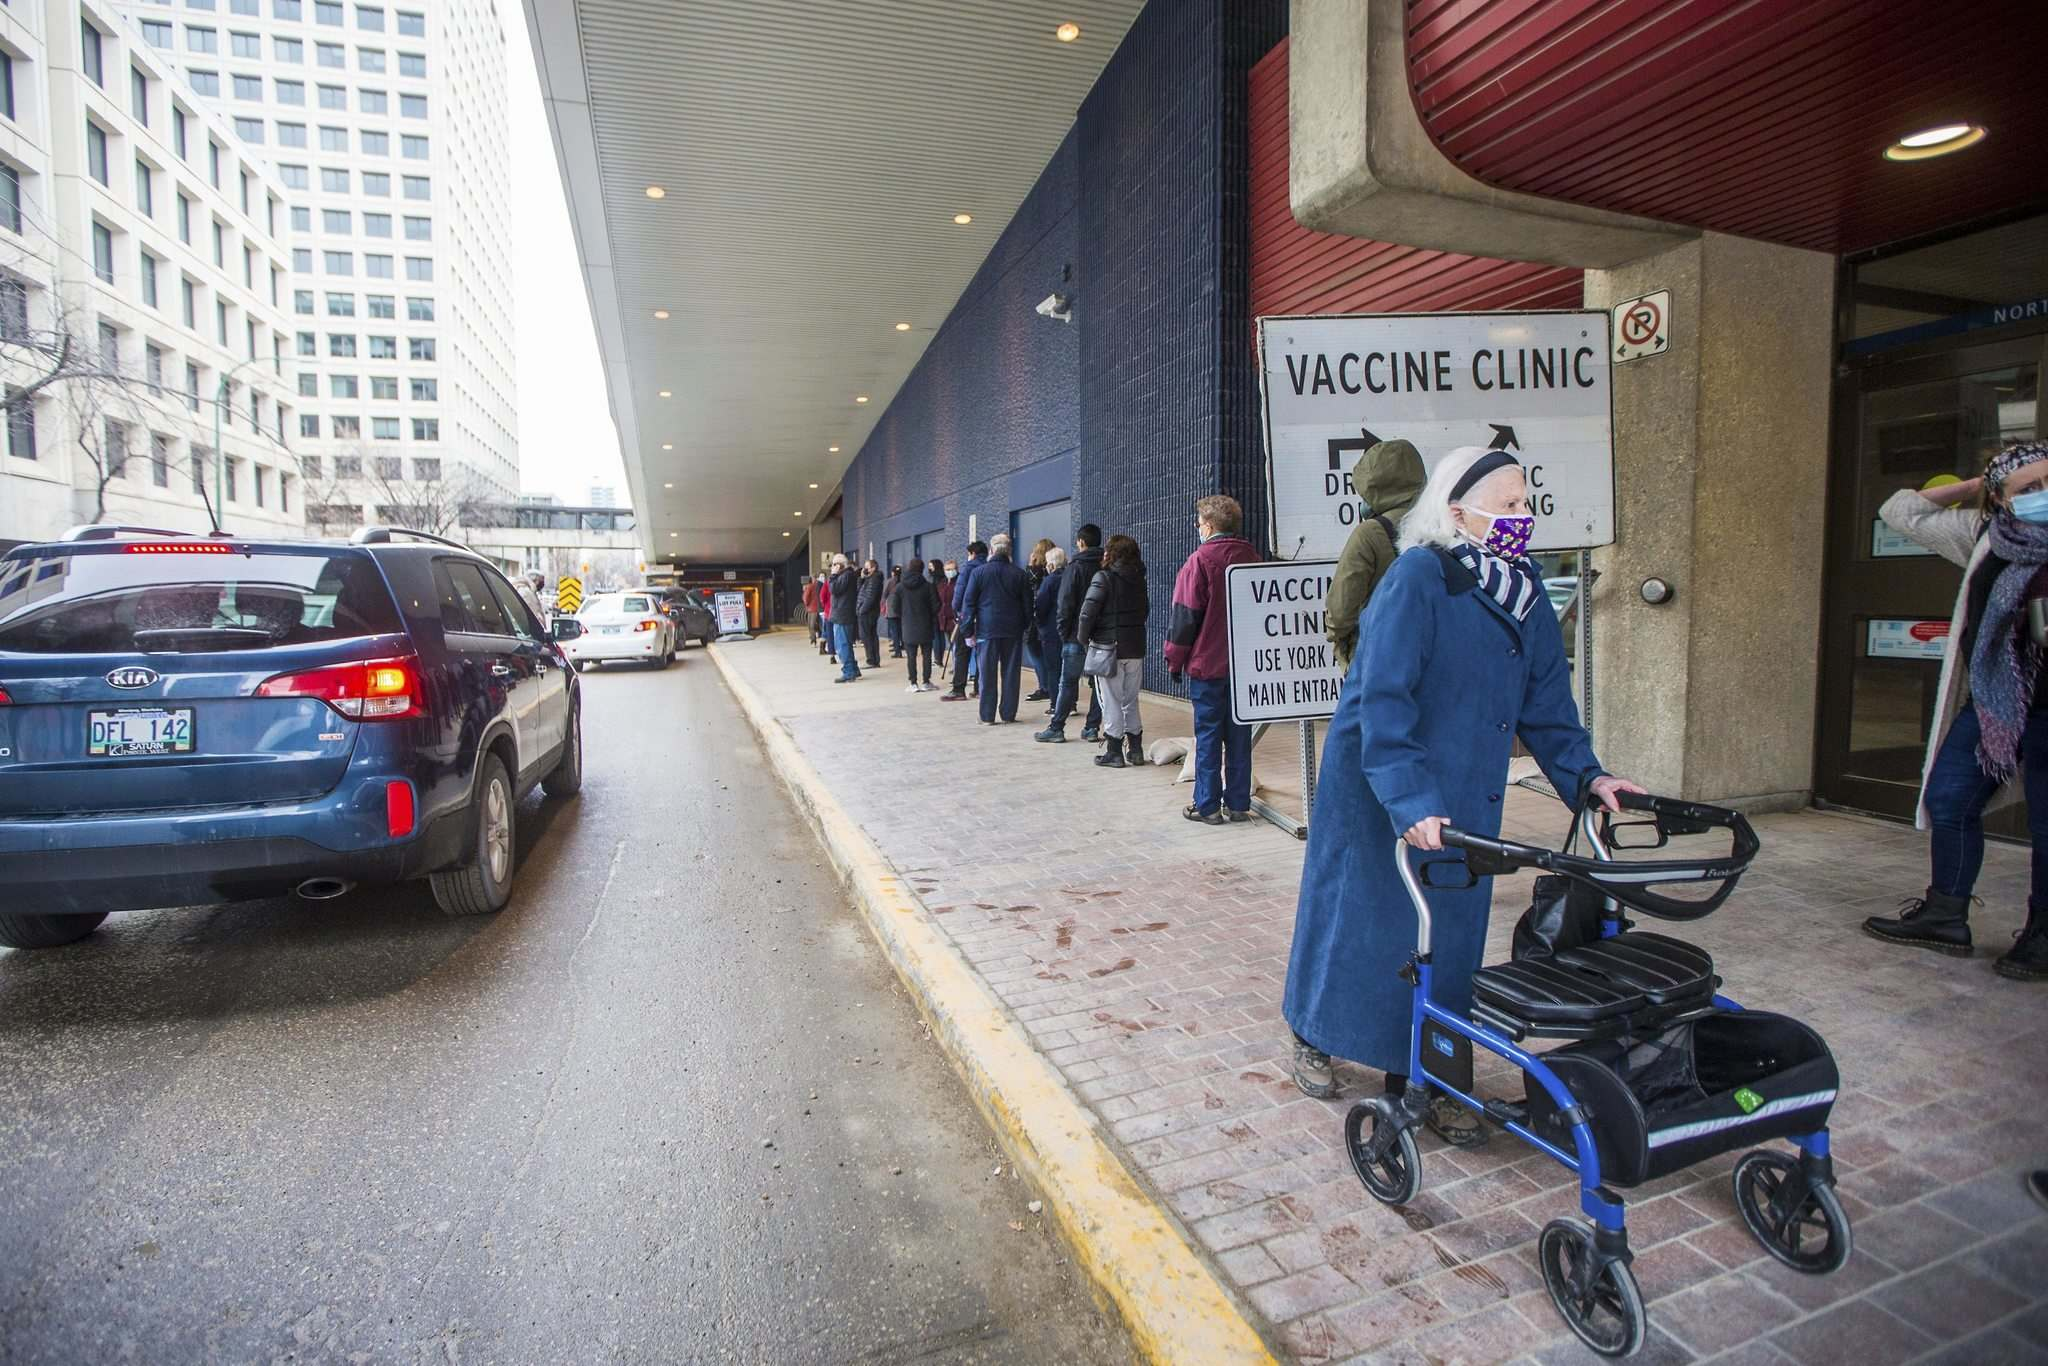 All the wheelchairs on site were being used so seniors would have a place to sit down while waiting for hours in line. (Mikaela MacKenzie / Winnipeg Free Press)